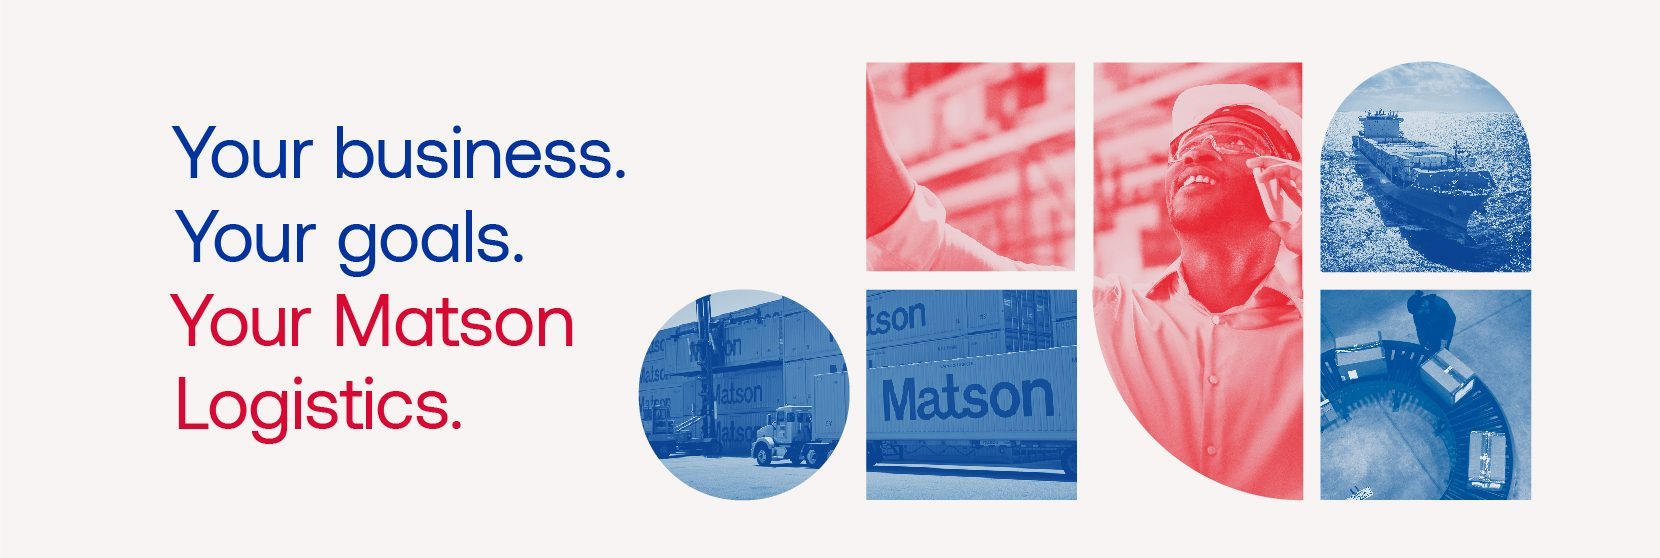 Matson Logistics banner showing services: ocean, warehouse, highway